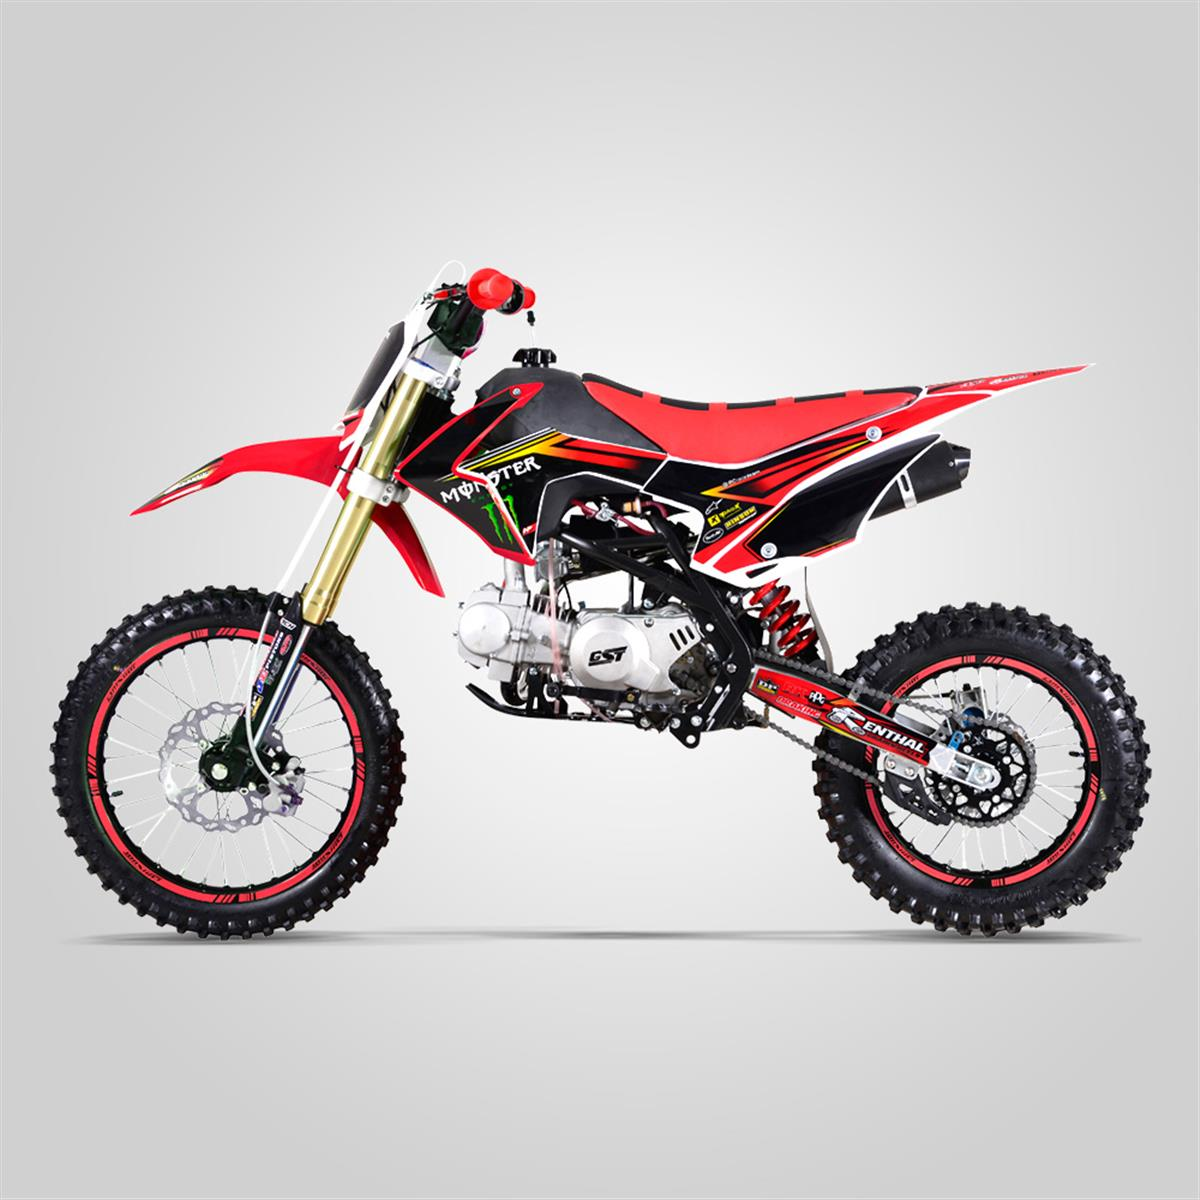 dirt bike gunshot 125cc fx pit bike smallmx dirt bike pit bike quads minimoto. Black Bedroom Furniture Sets. Home Design Ideas